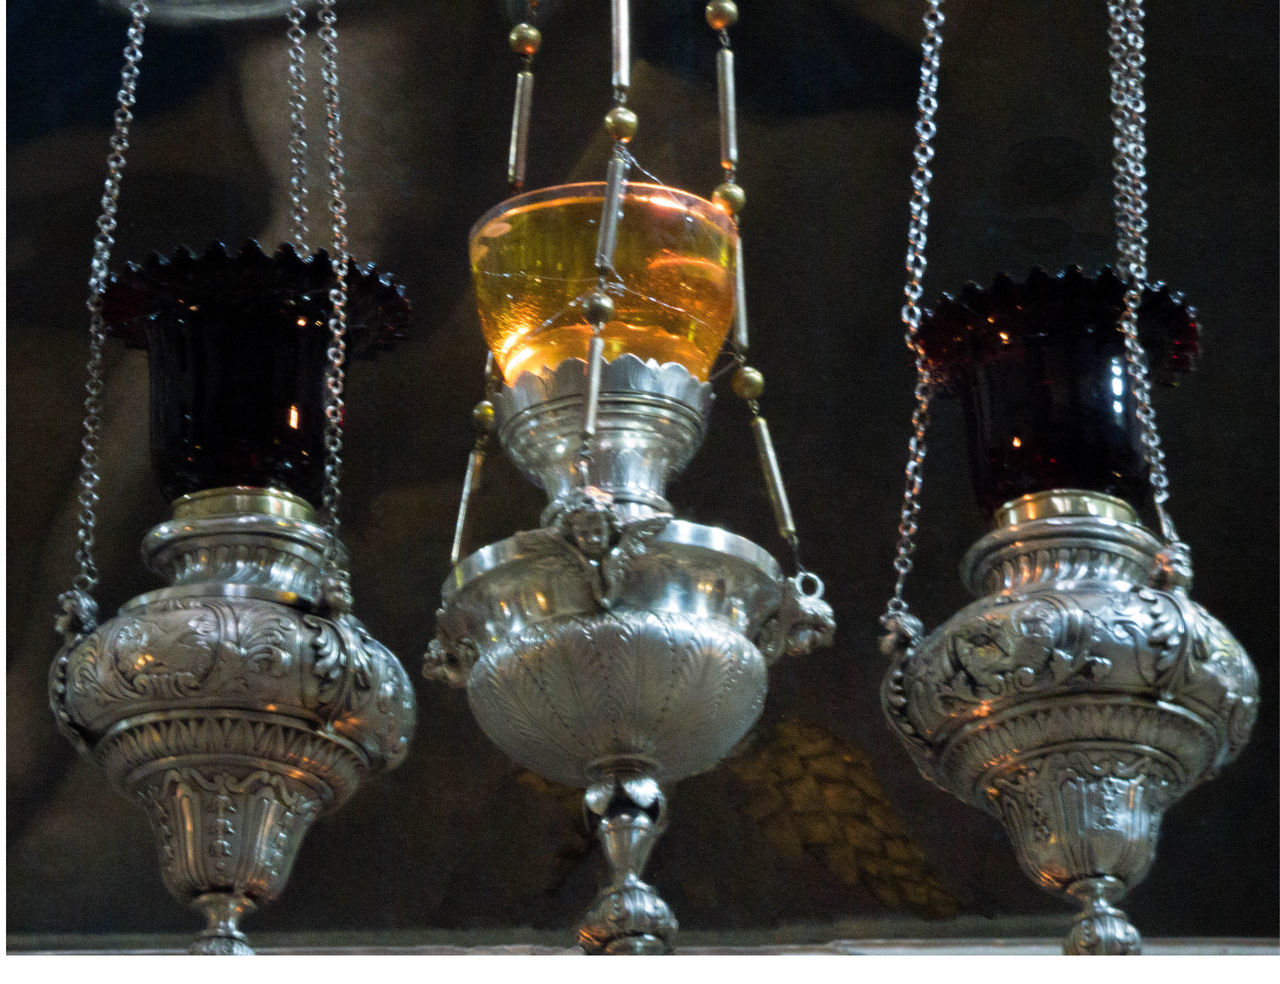 Armenian and Greek Orthodox silver oil lamps light the rotunda of the Church of the Holy Sepulchre in Jerusalem, Israel. Church Of The Holy Sepulchre Hanging Lamps Israel Jerusalem Light No People Oil Lamps Silver  Silver And Glass Oil Lam Transparency